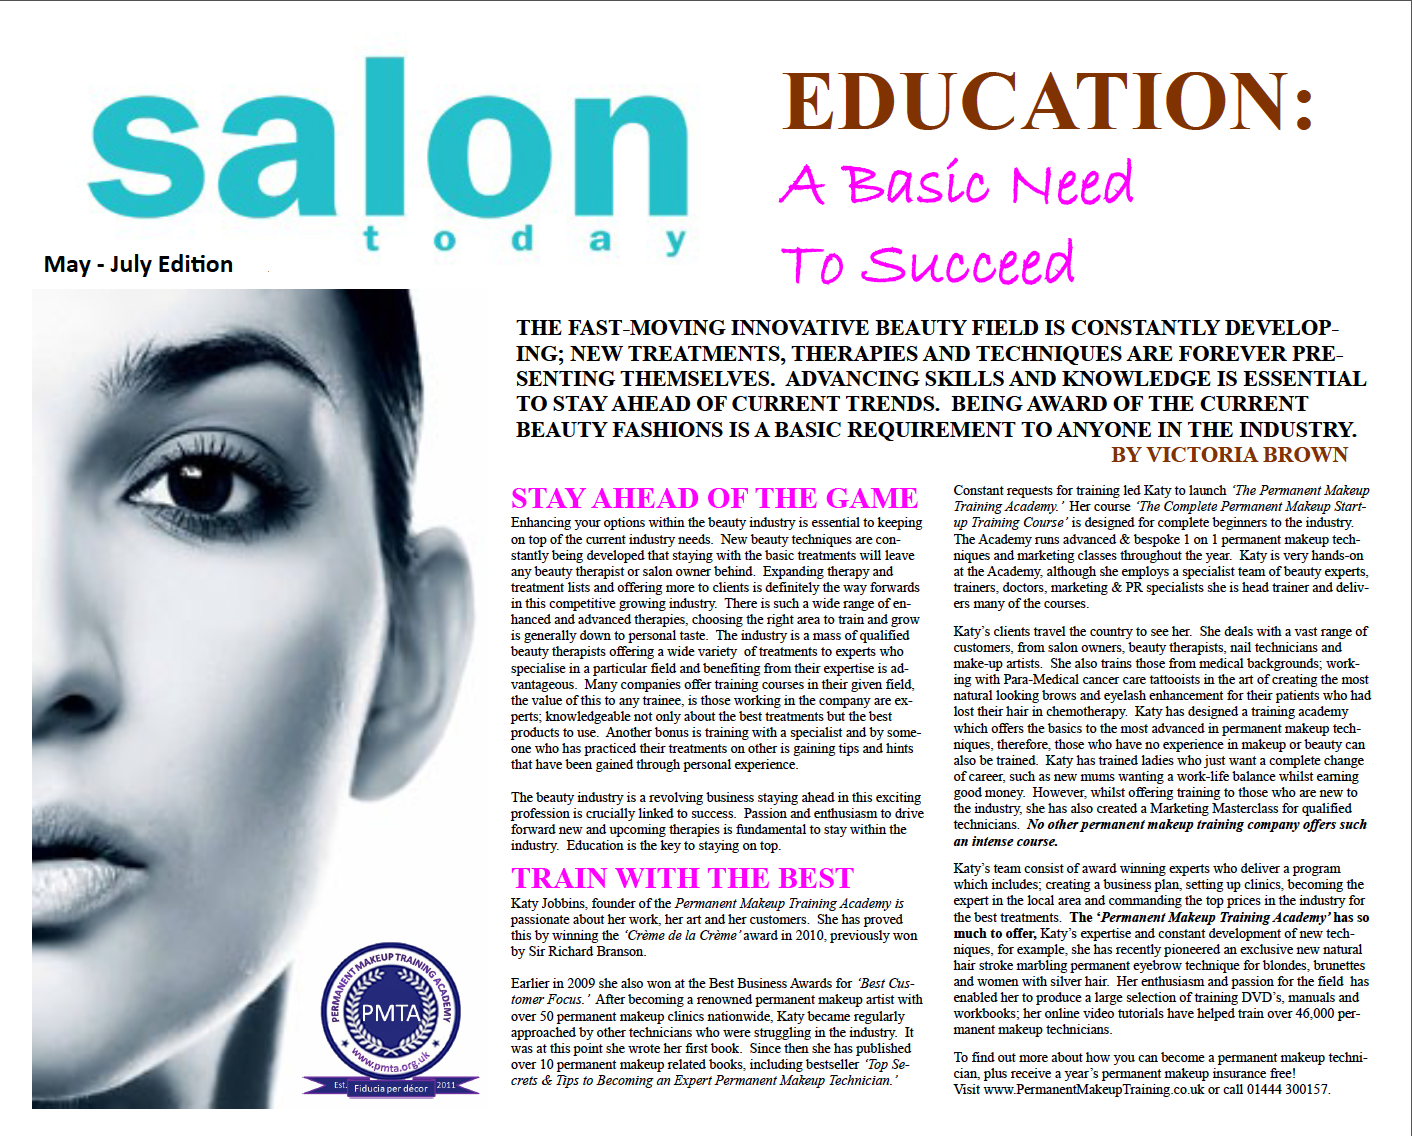 Permanent makeup training academy reviewed in salon today